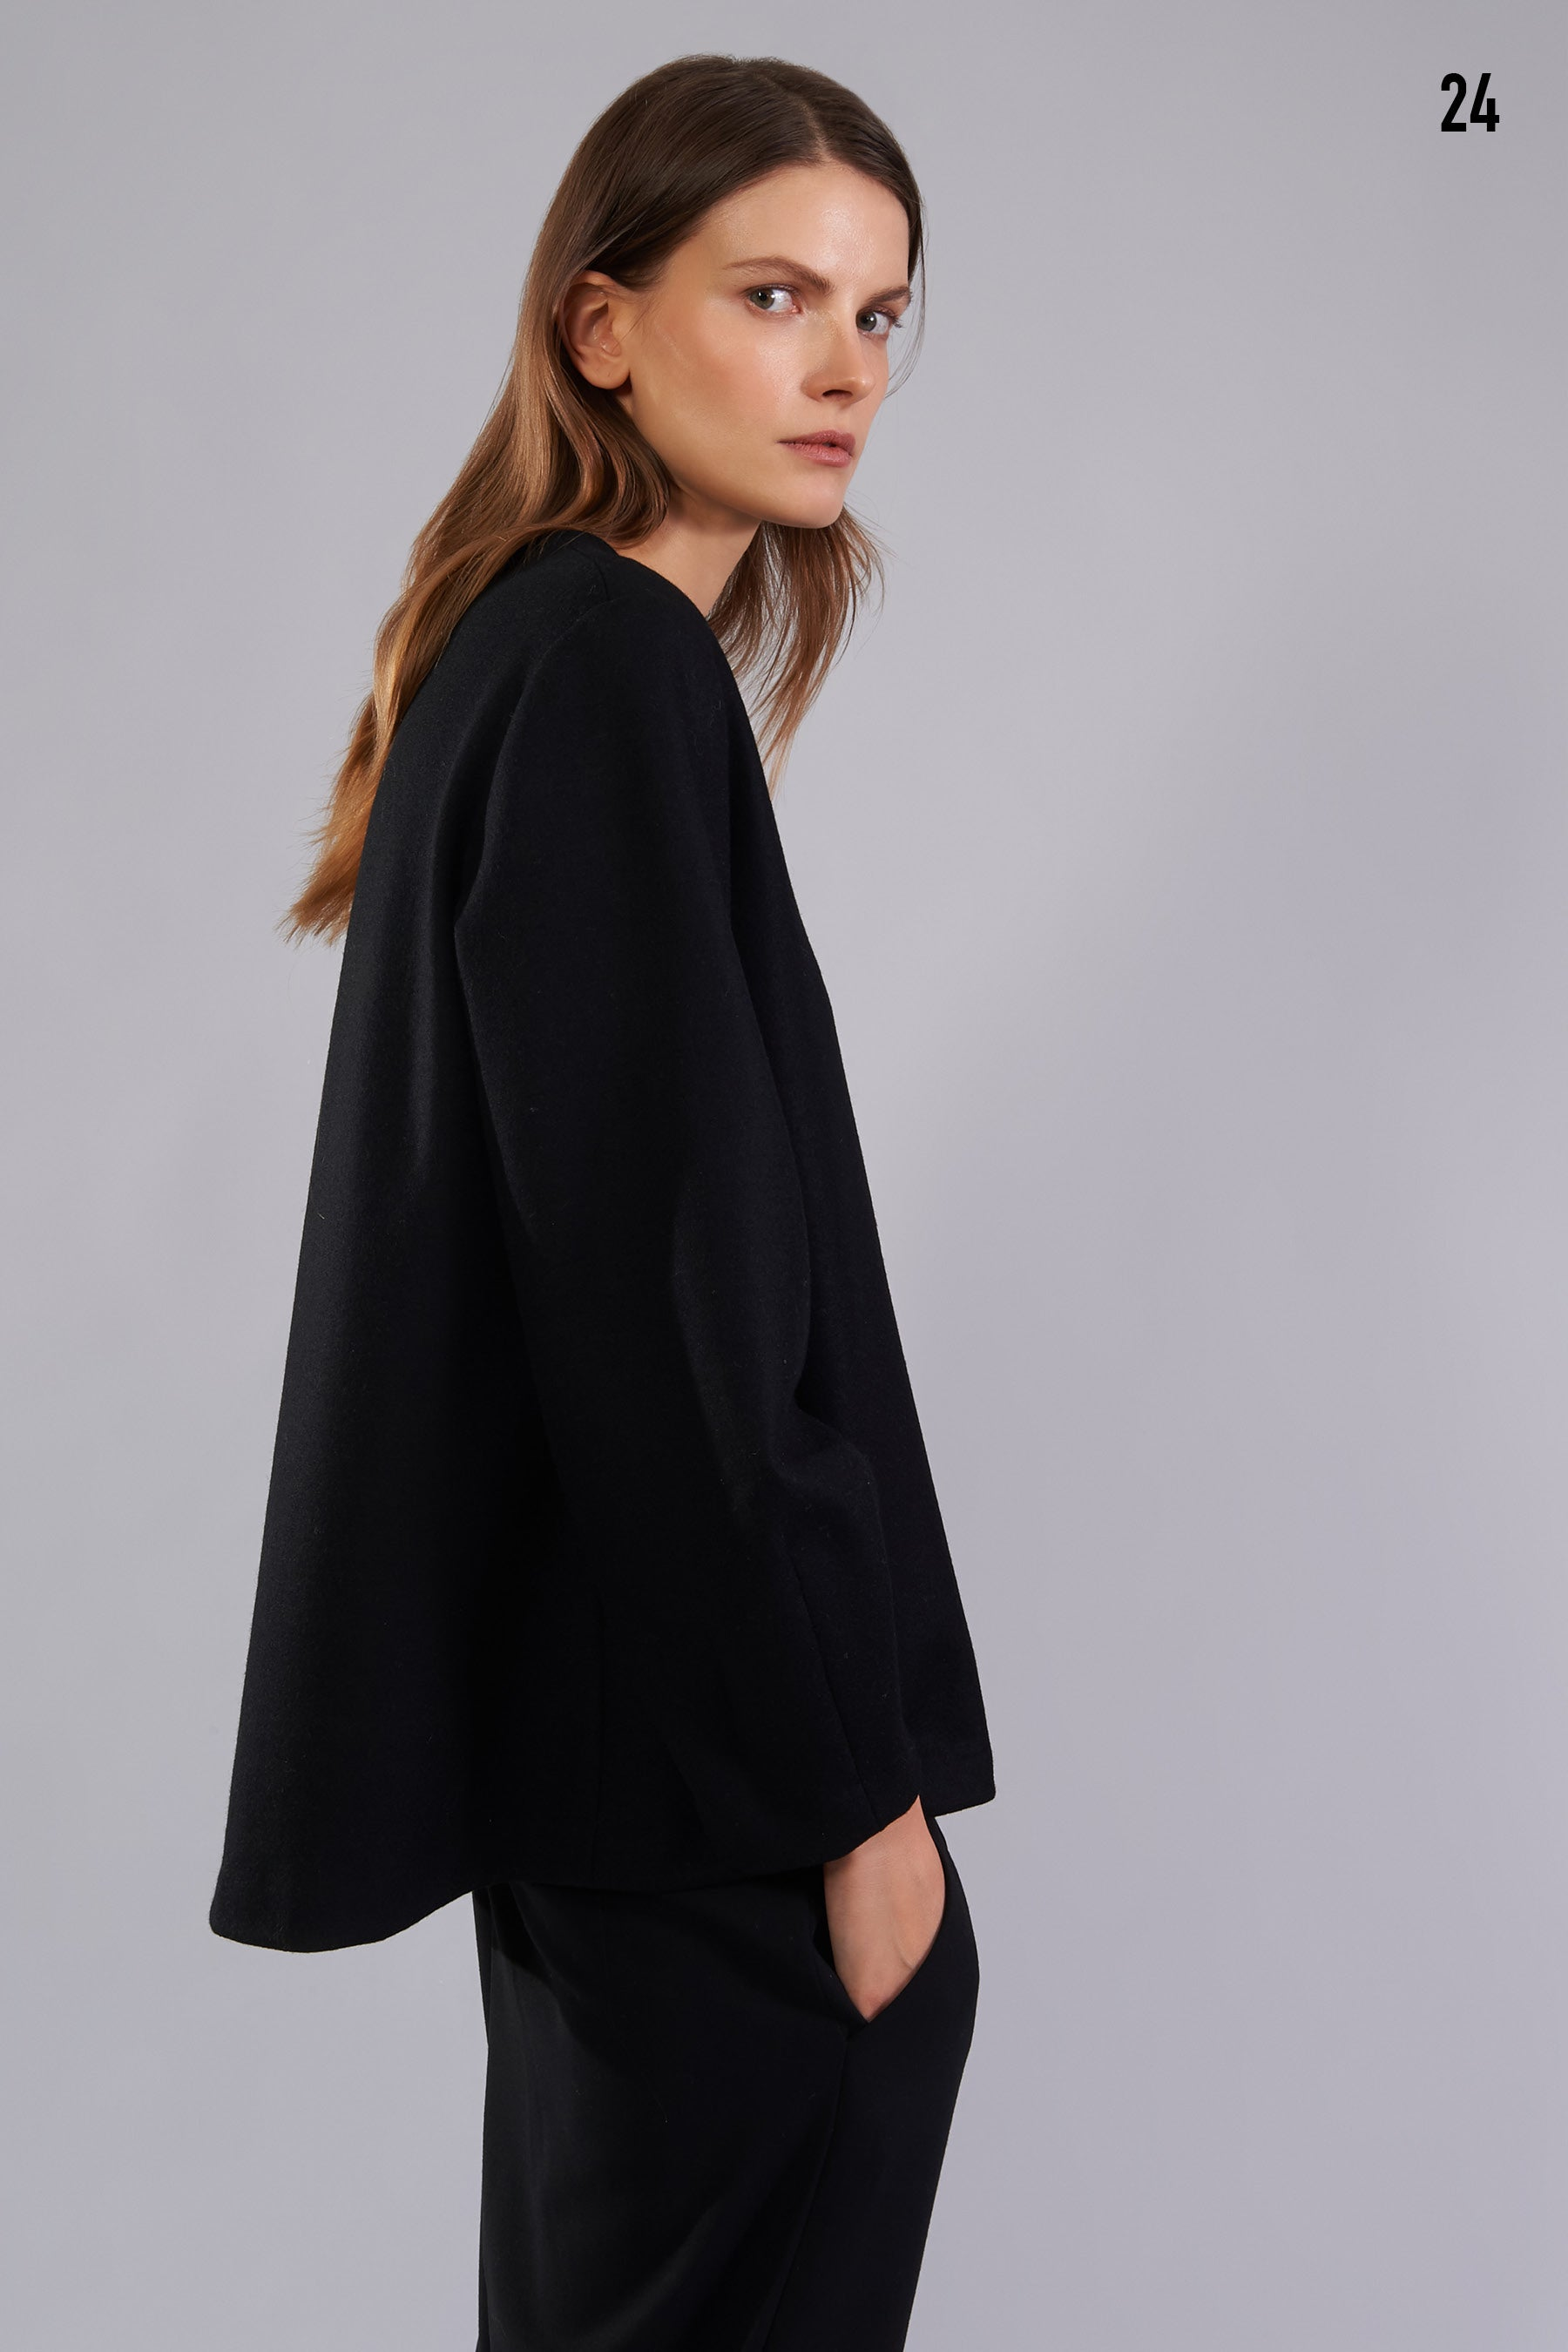 Kal Rieman Fall 2019 Lookbook Look 24